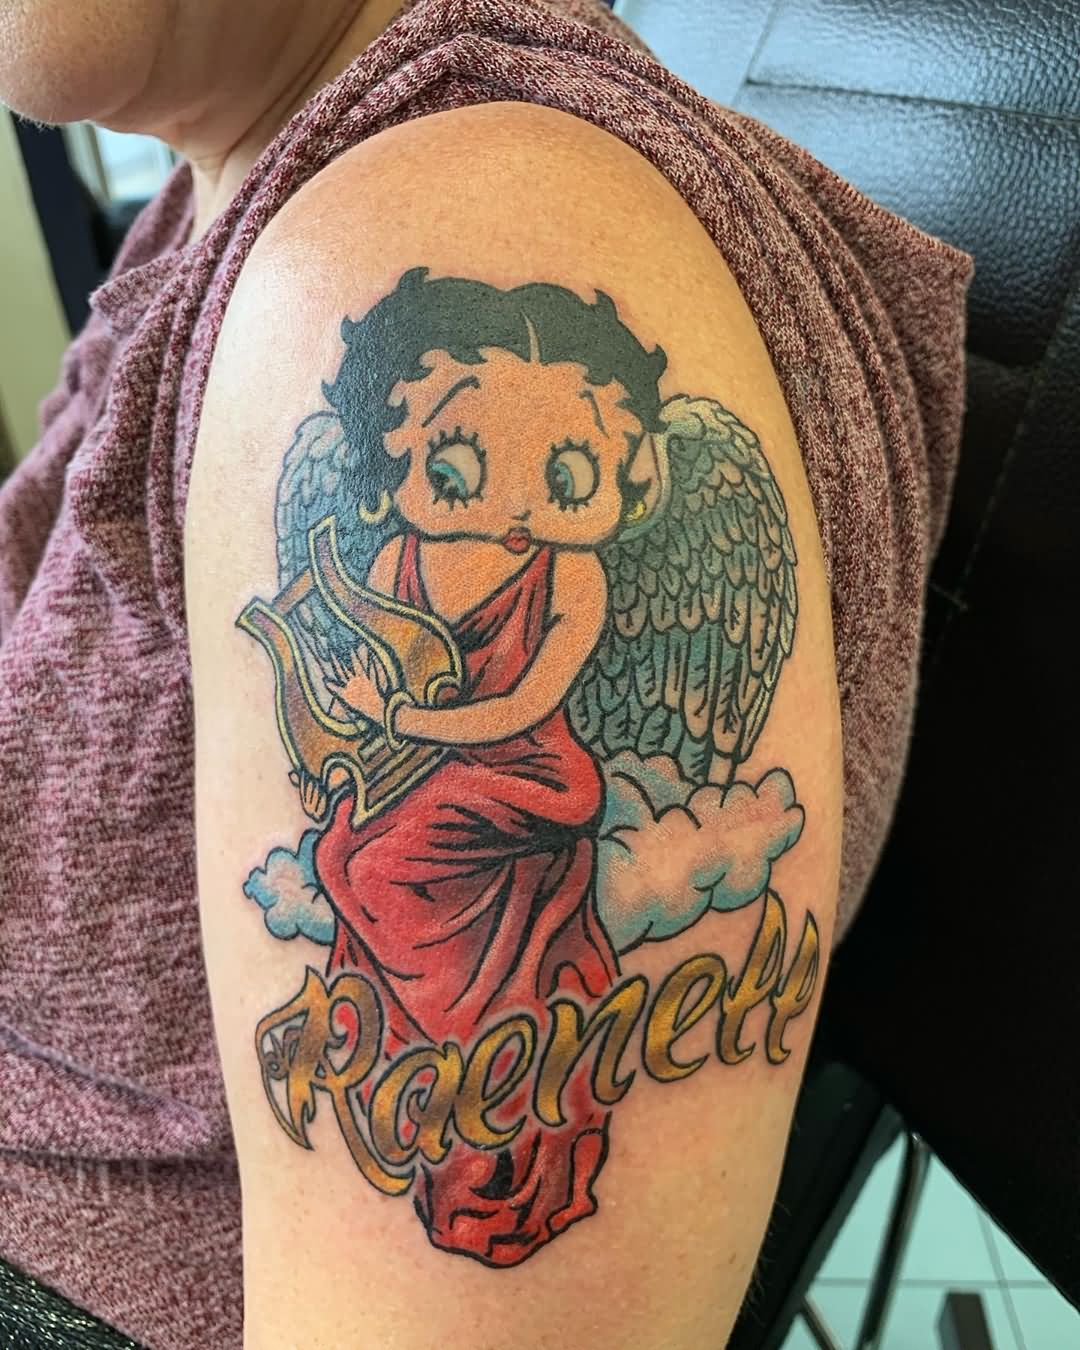 Name With Betty Boop Tattoo On Arm